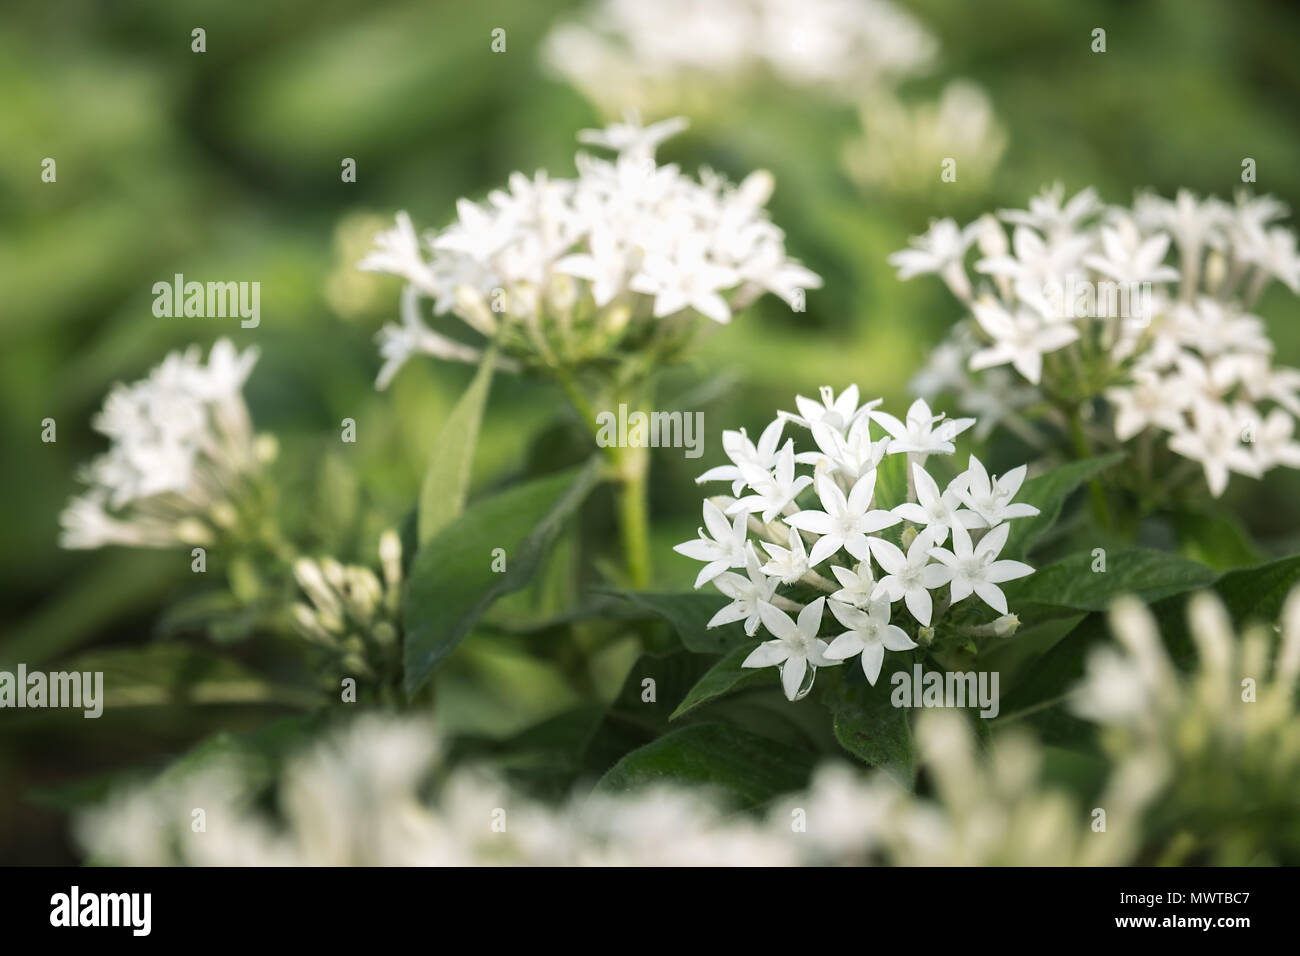 White Pentas Lanceolata Or Egyptian Star Cluster Flowers Blooming In